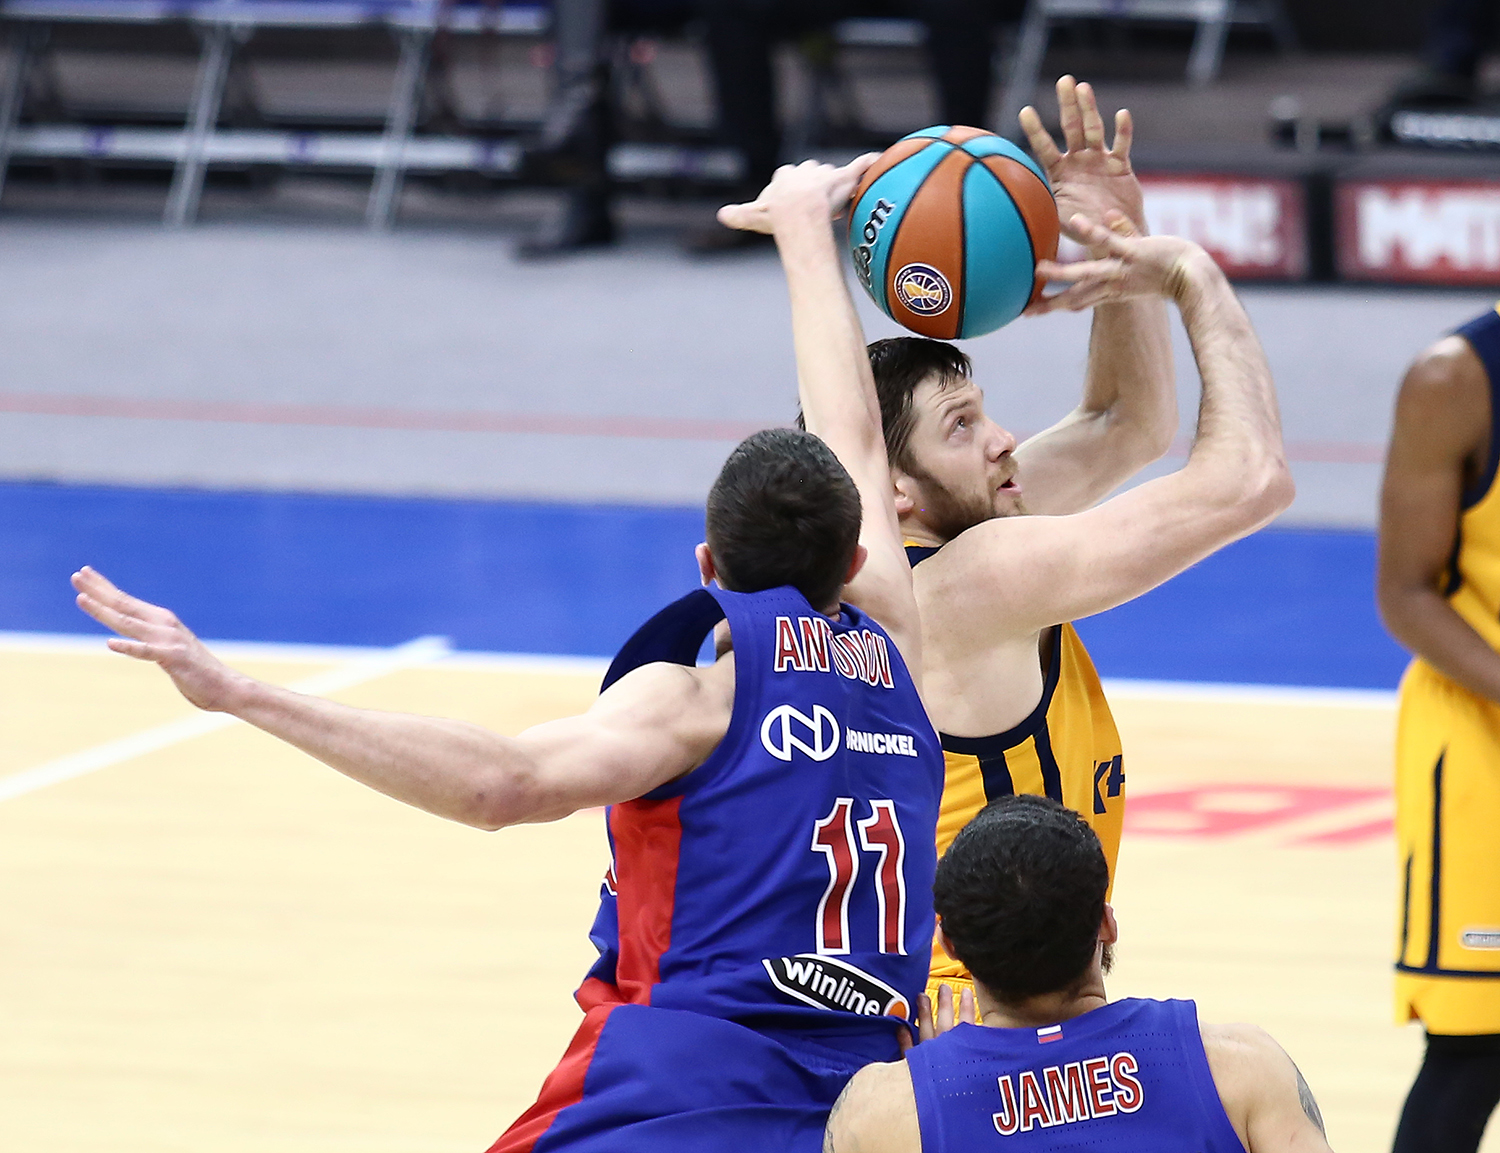 CSKA win in Leningradka Derby for the first time in 2 years